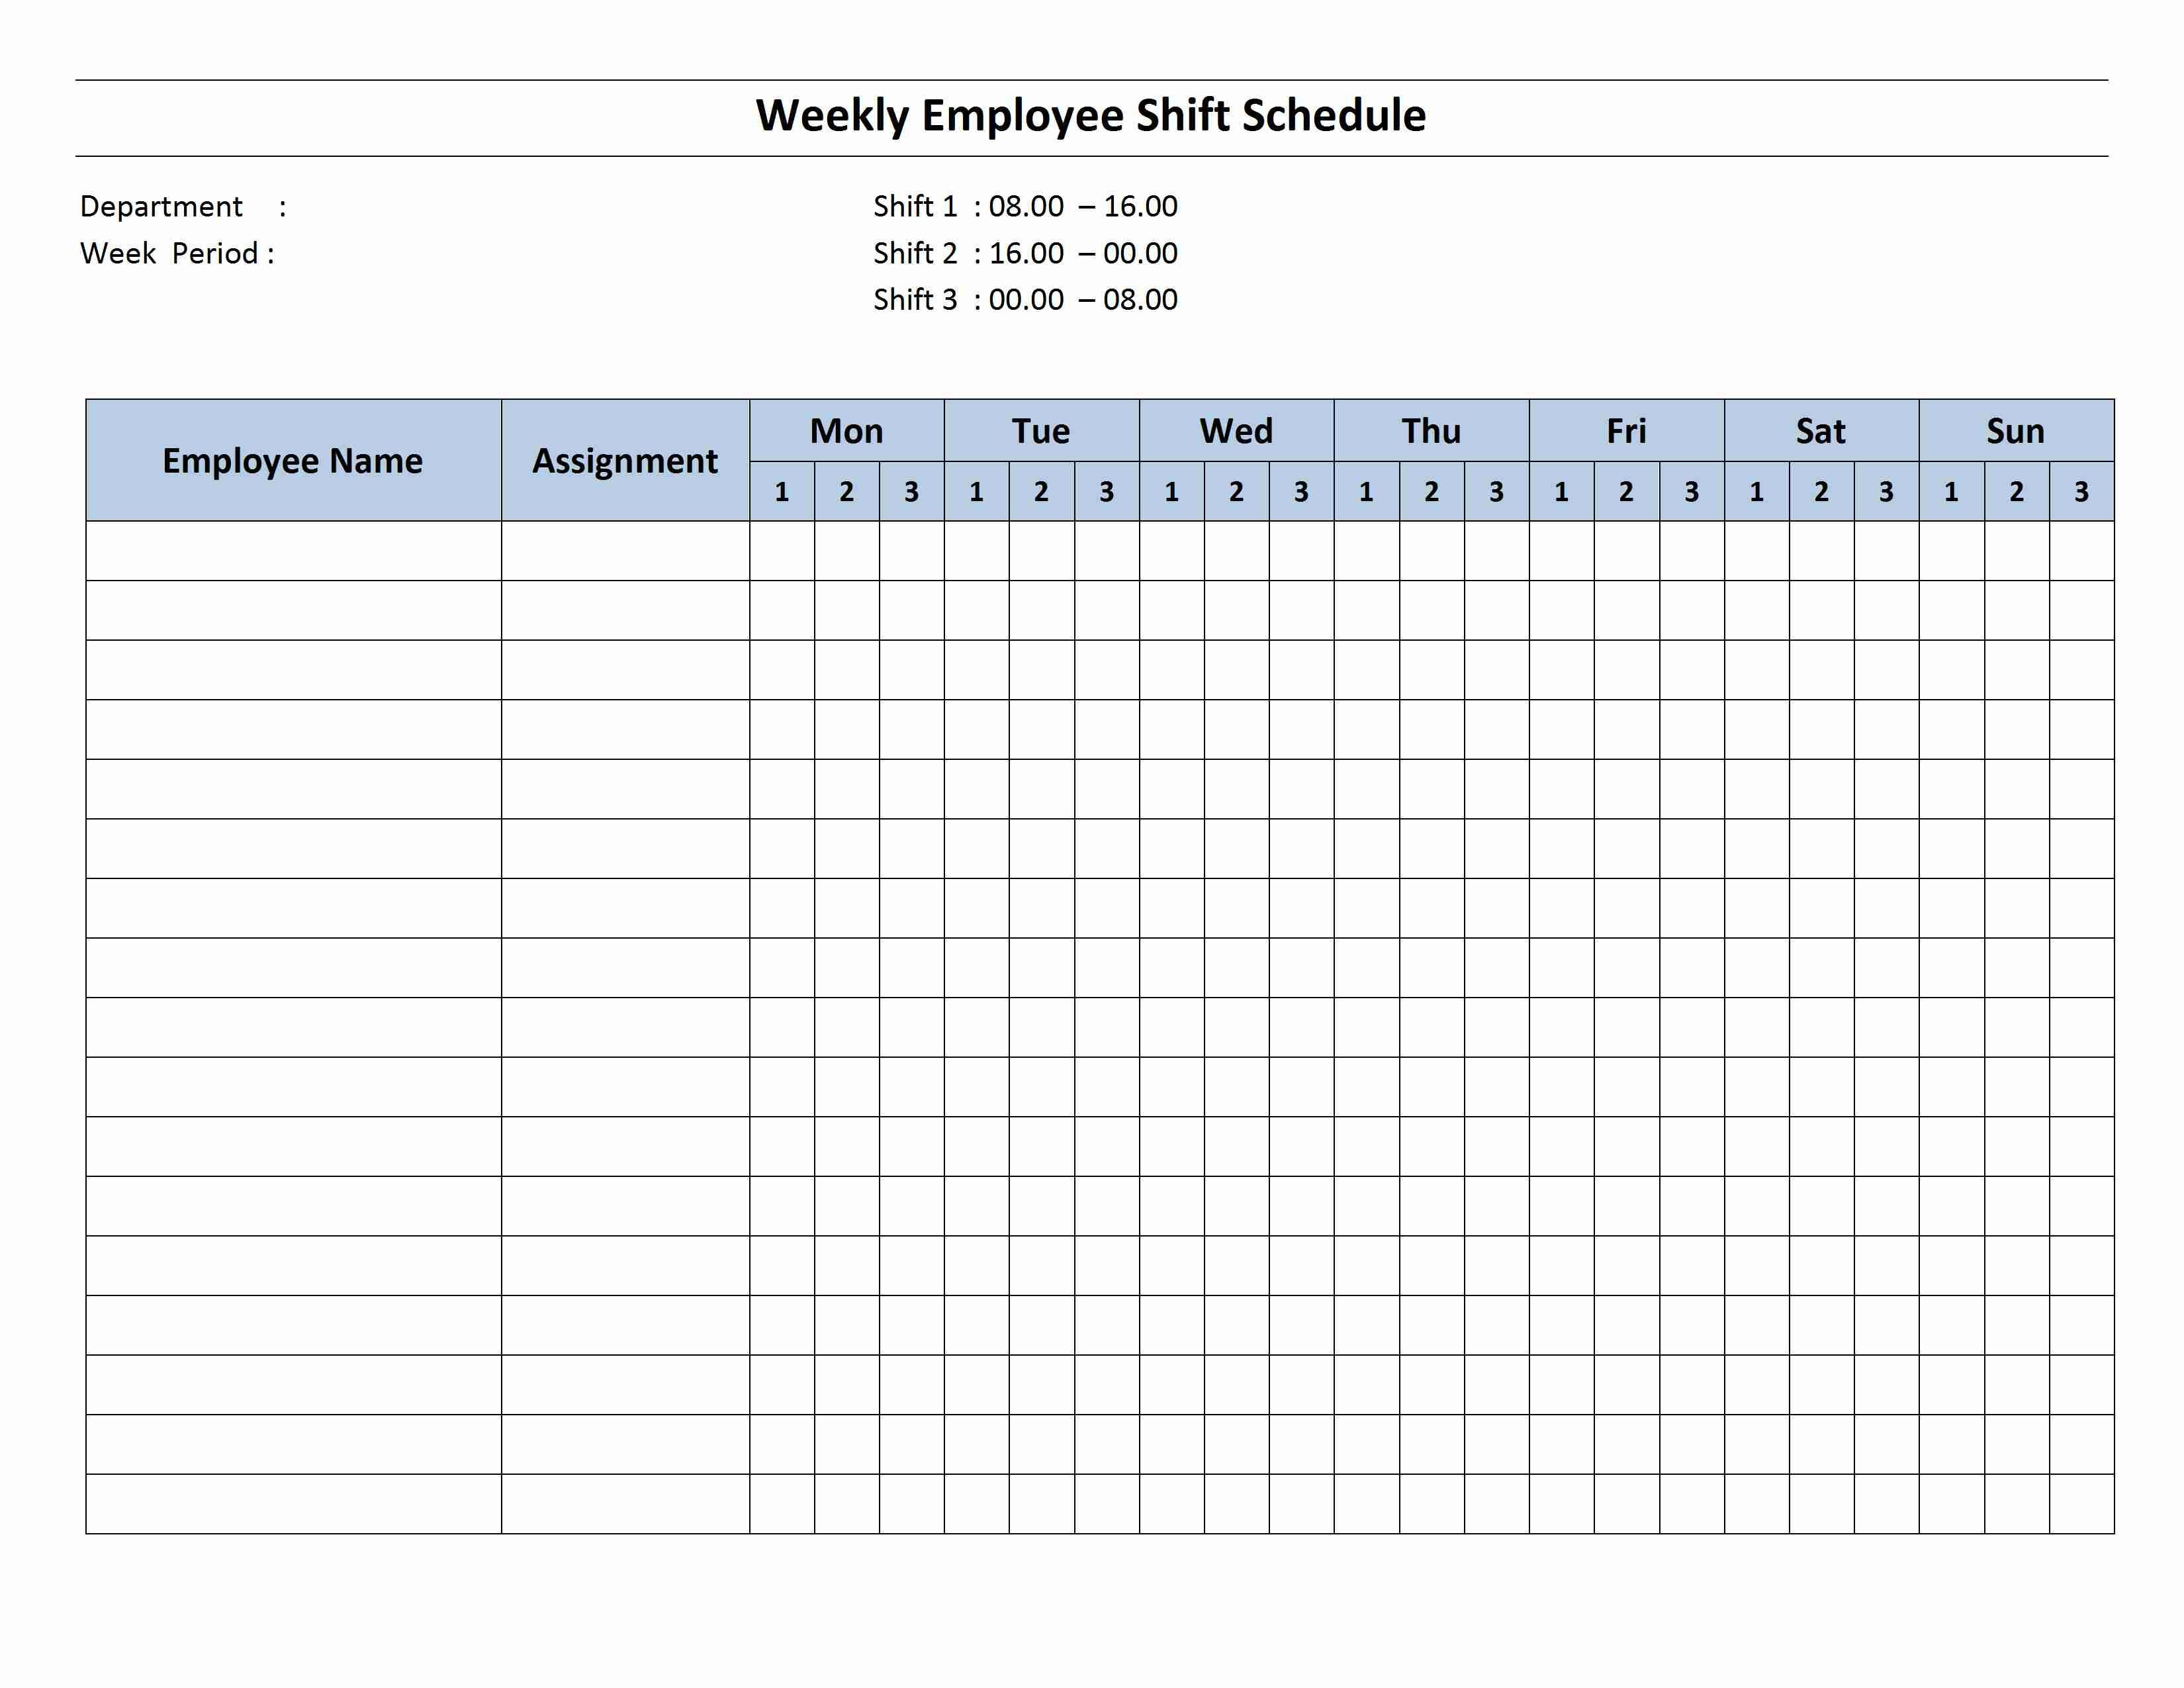 026 Biweekly Pay Schedule Template Ideas 20Free Excel Work